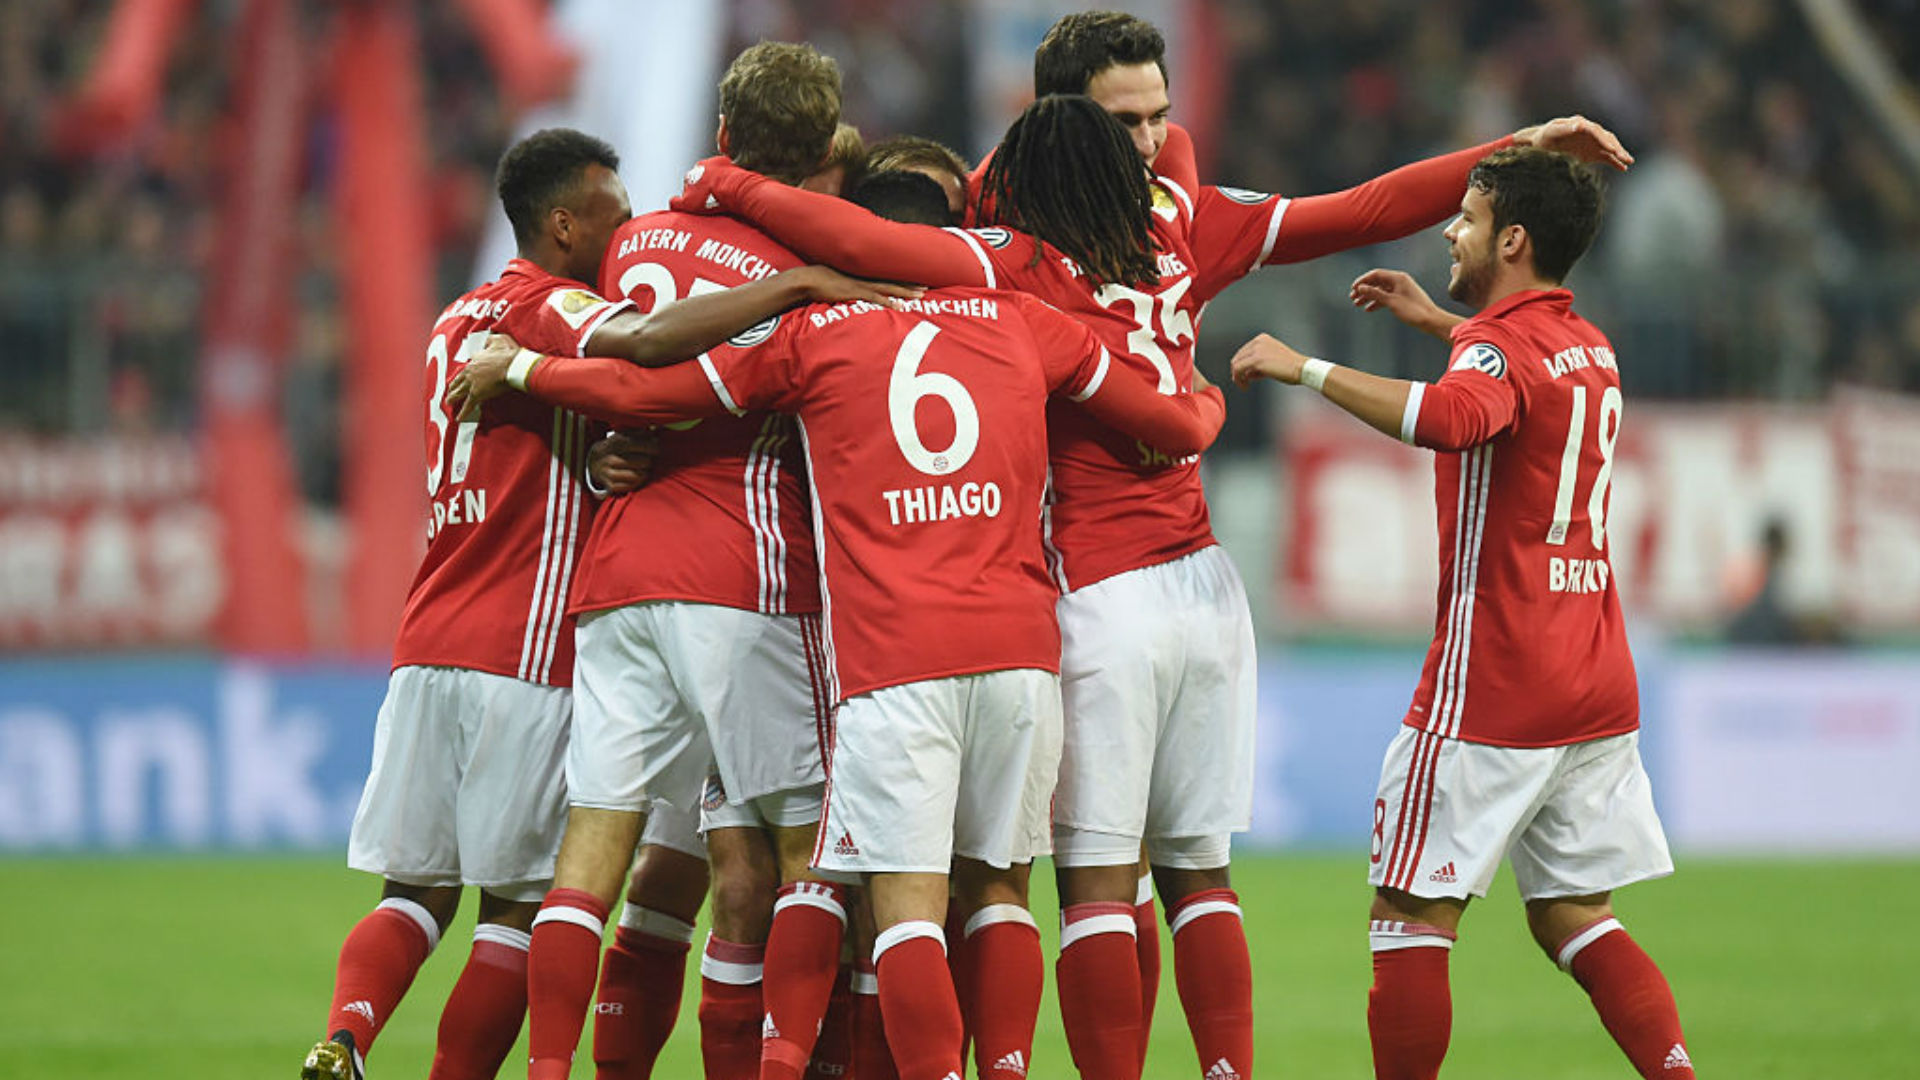 Bayern Munich 3-1 Augsburg: Ancelotti's side progress to third round of DFB-Pokal